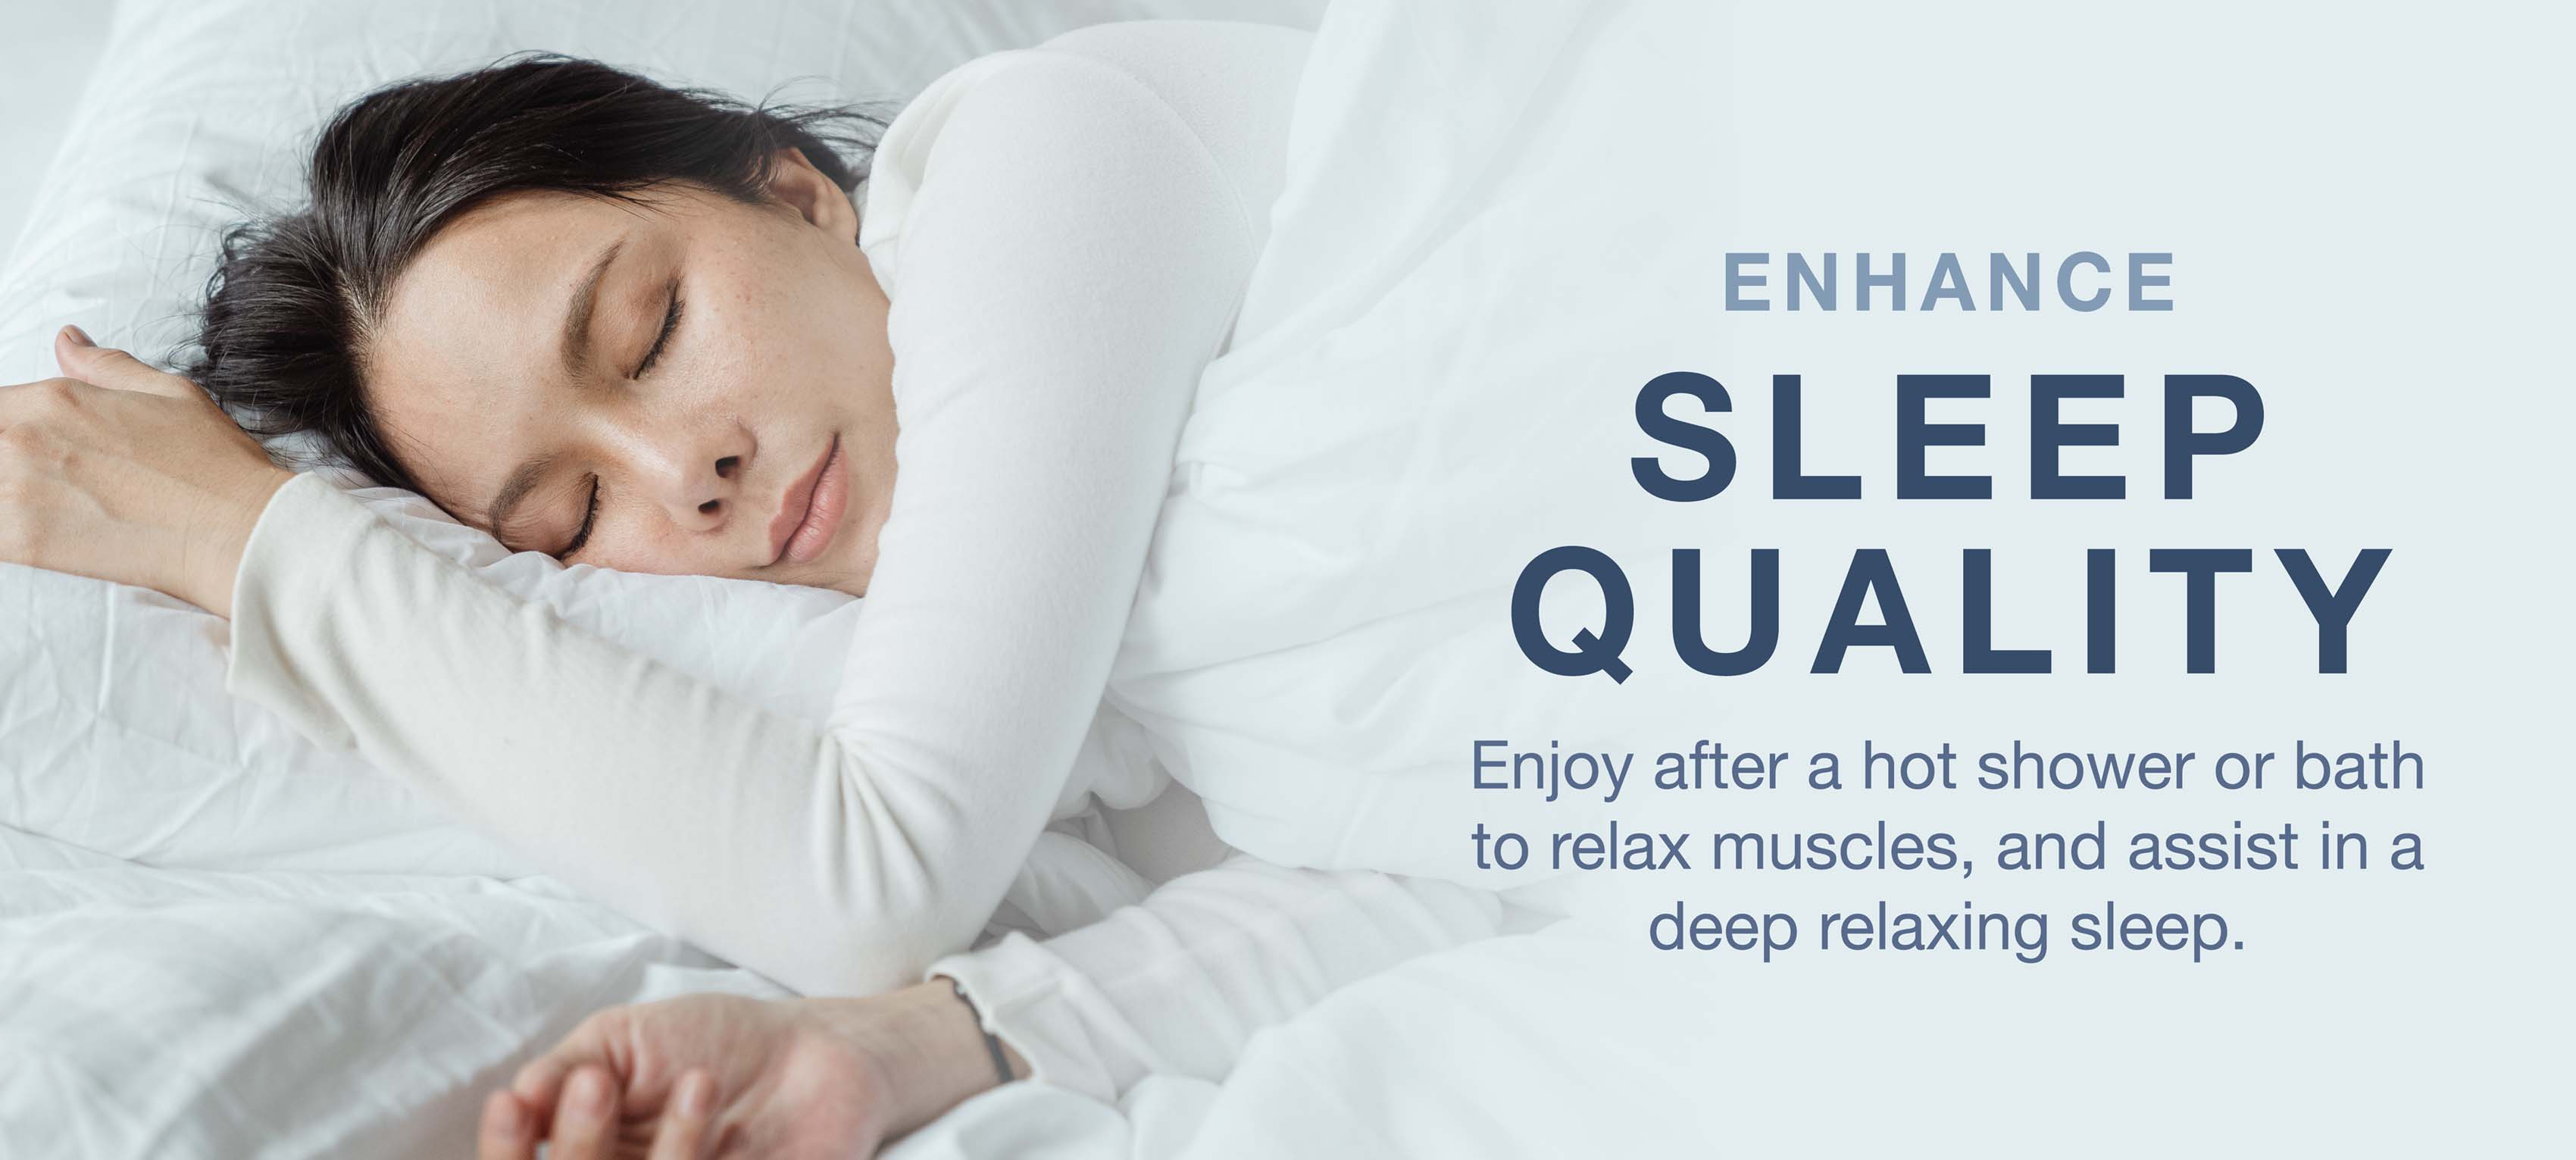 Enhance sleep quality after a hot shower or bath to relax muscles and assist in deep relaxing sleep.